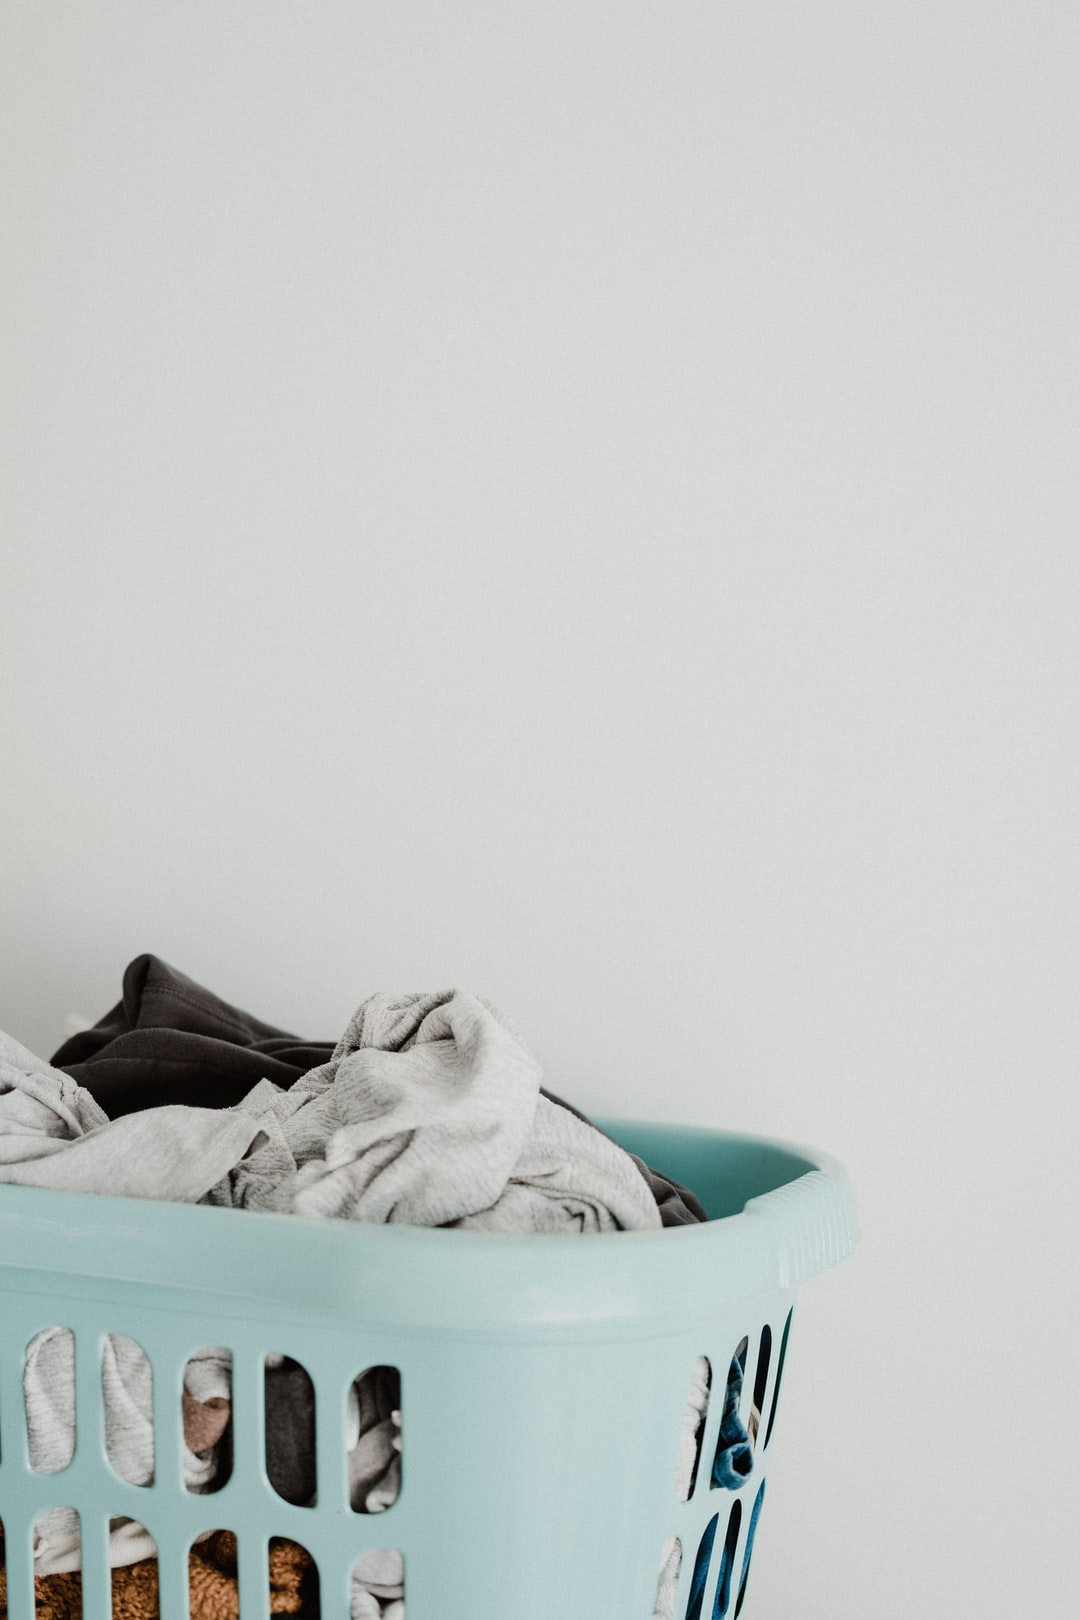 Routine - laundry basket full of clean clothes